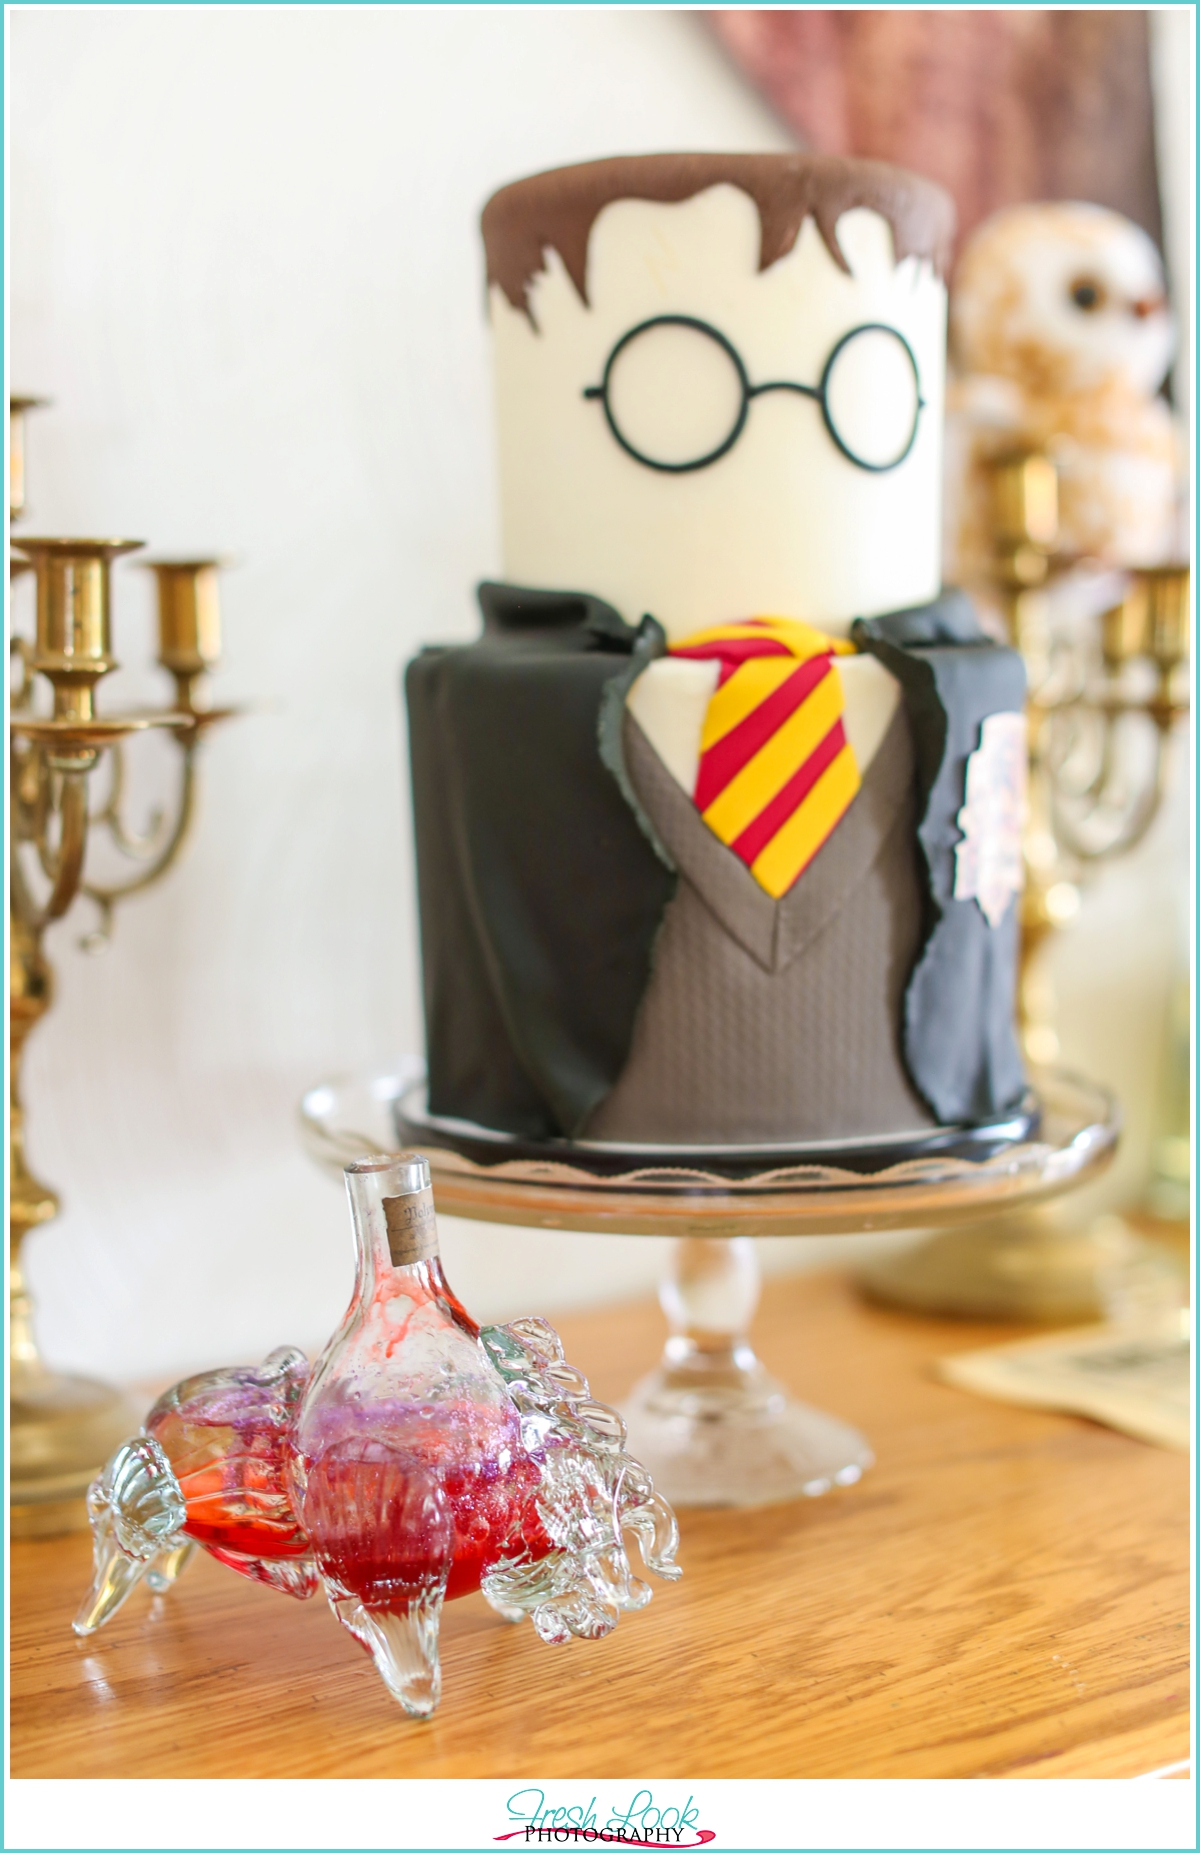 Pleasant Harry Potter Birthday Party Wesley Turns 12 Judithsfreshlook Com Funny Birthday Cards Online Sheoxdamsfinfo